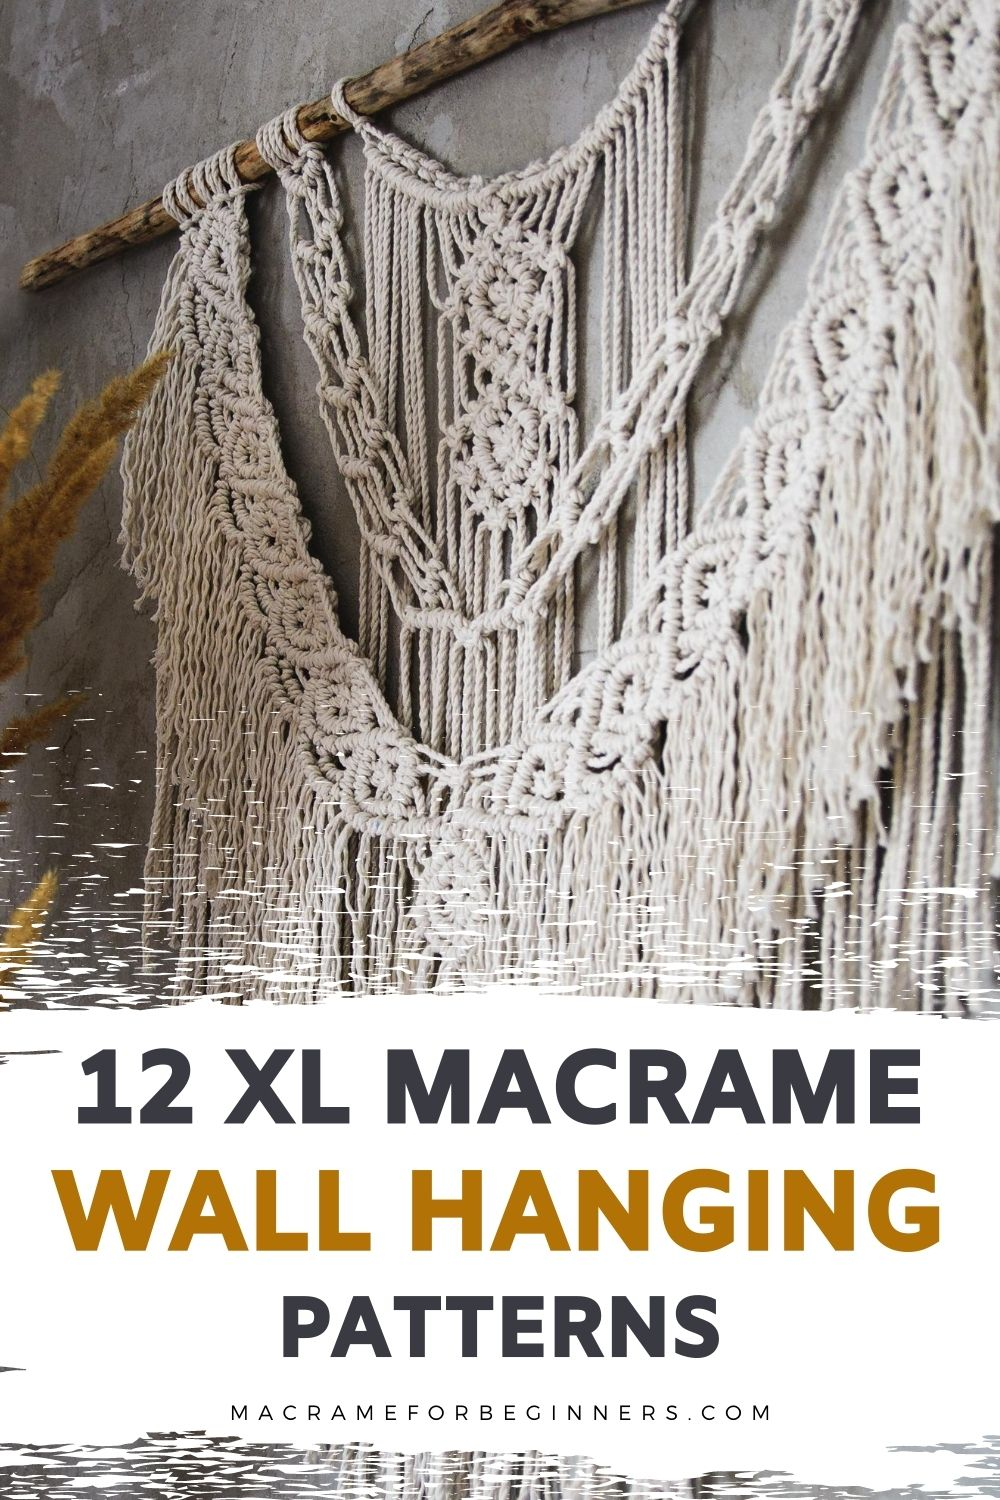 12 Gorgeous Large Macrame Wall Hanging Patterns - Macrame for Beginners